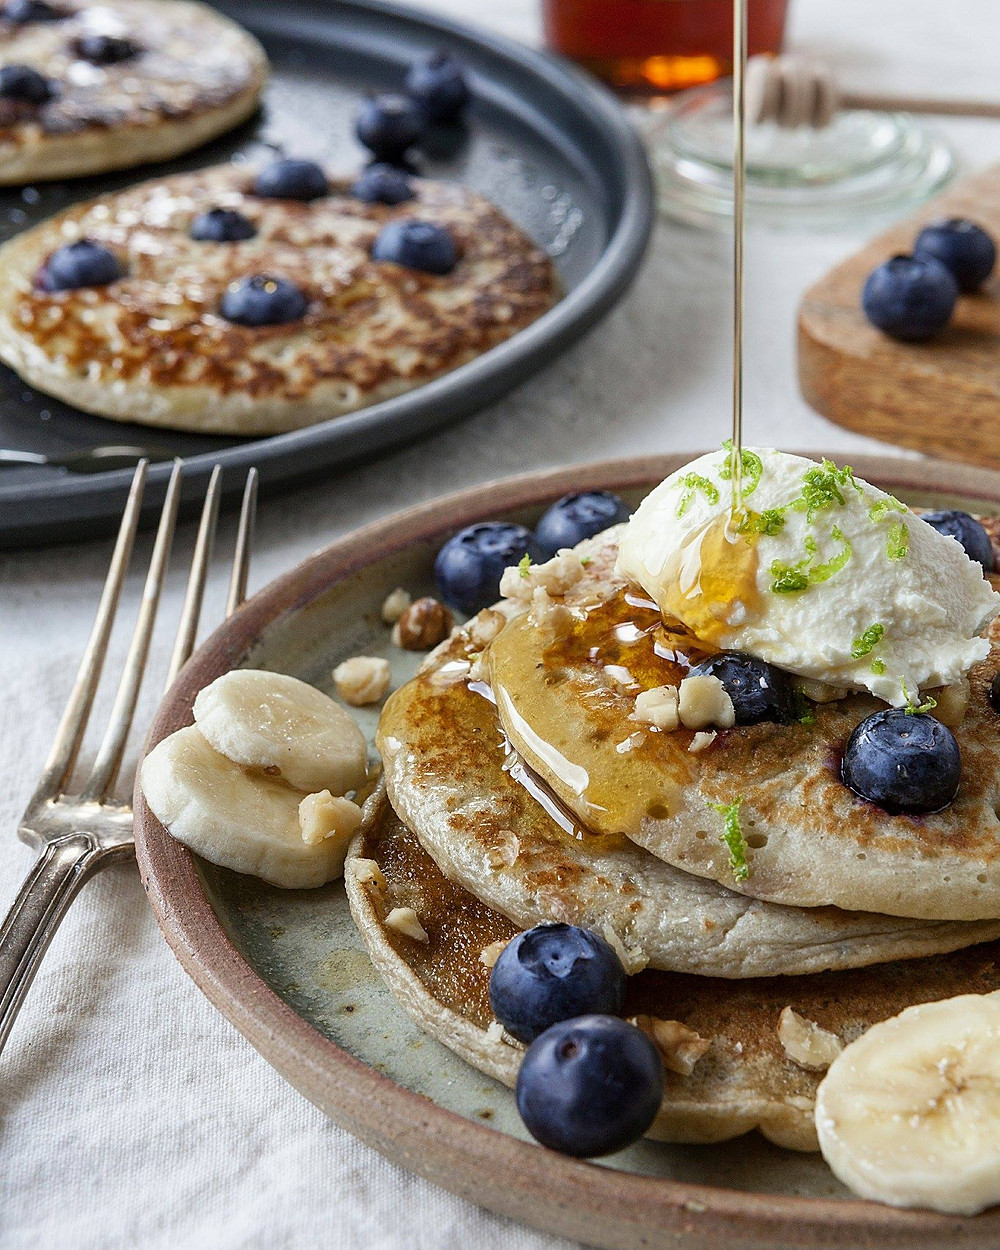 Blueberry banana pancakes - foodstyling by FoodLove - Photography by French Beans